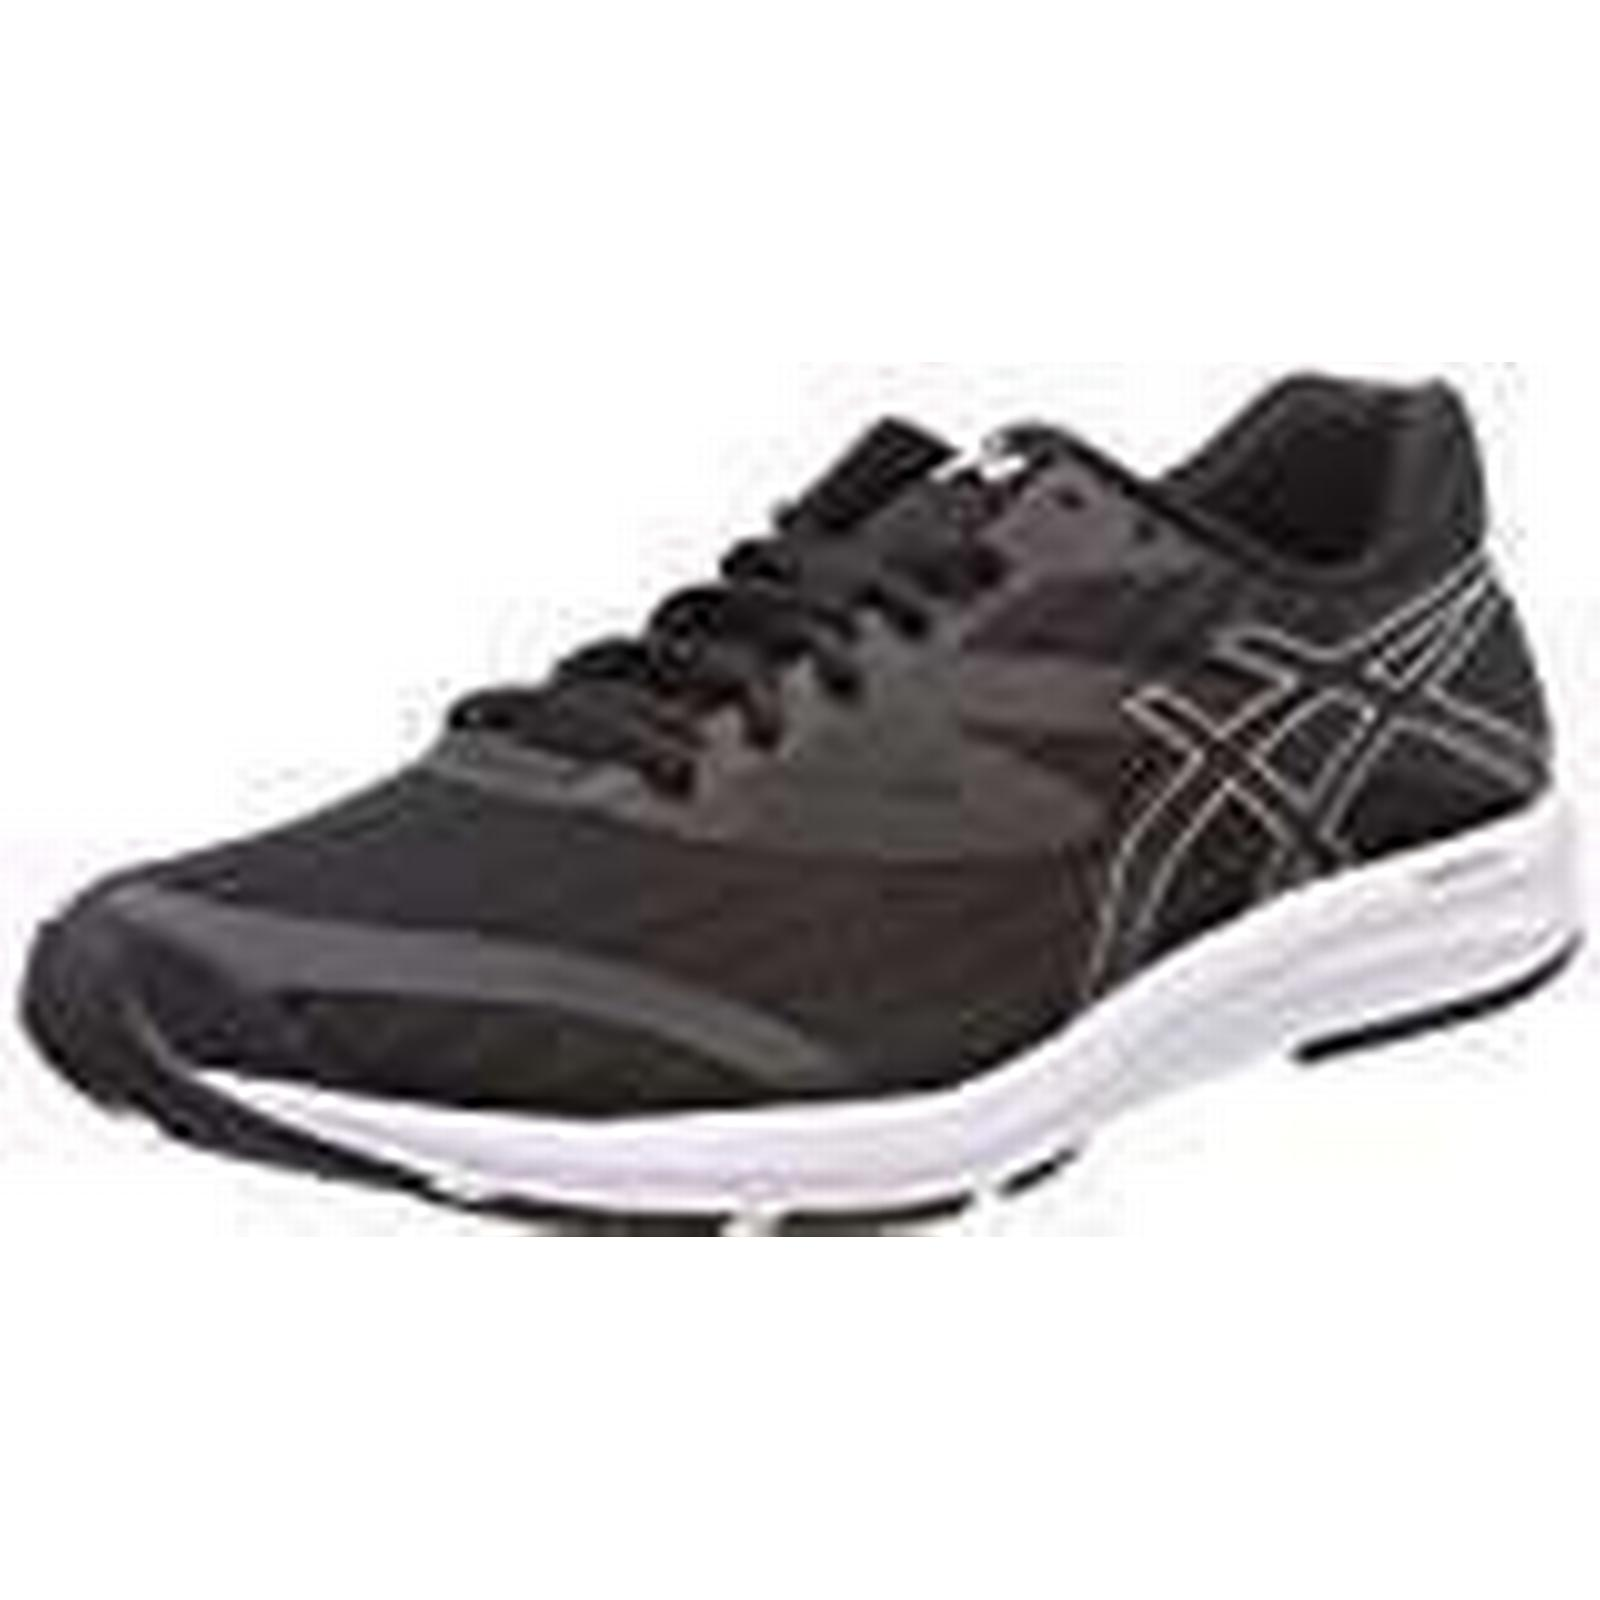 Asics Men's Amplica Competition Running UK Shoes, Black/White 9090, 8 UK Running af7462